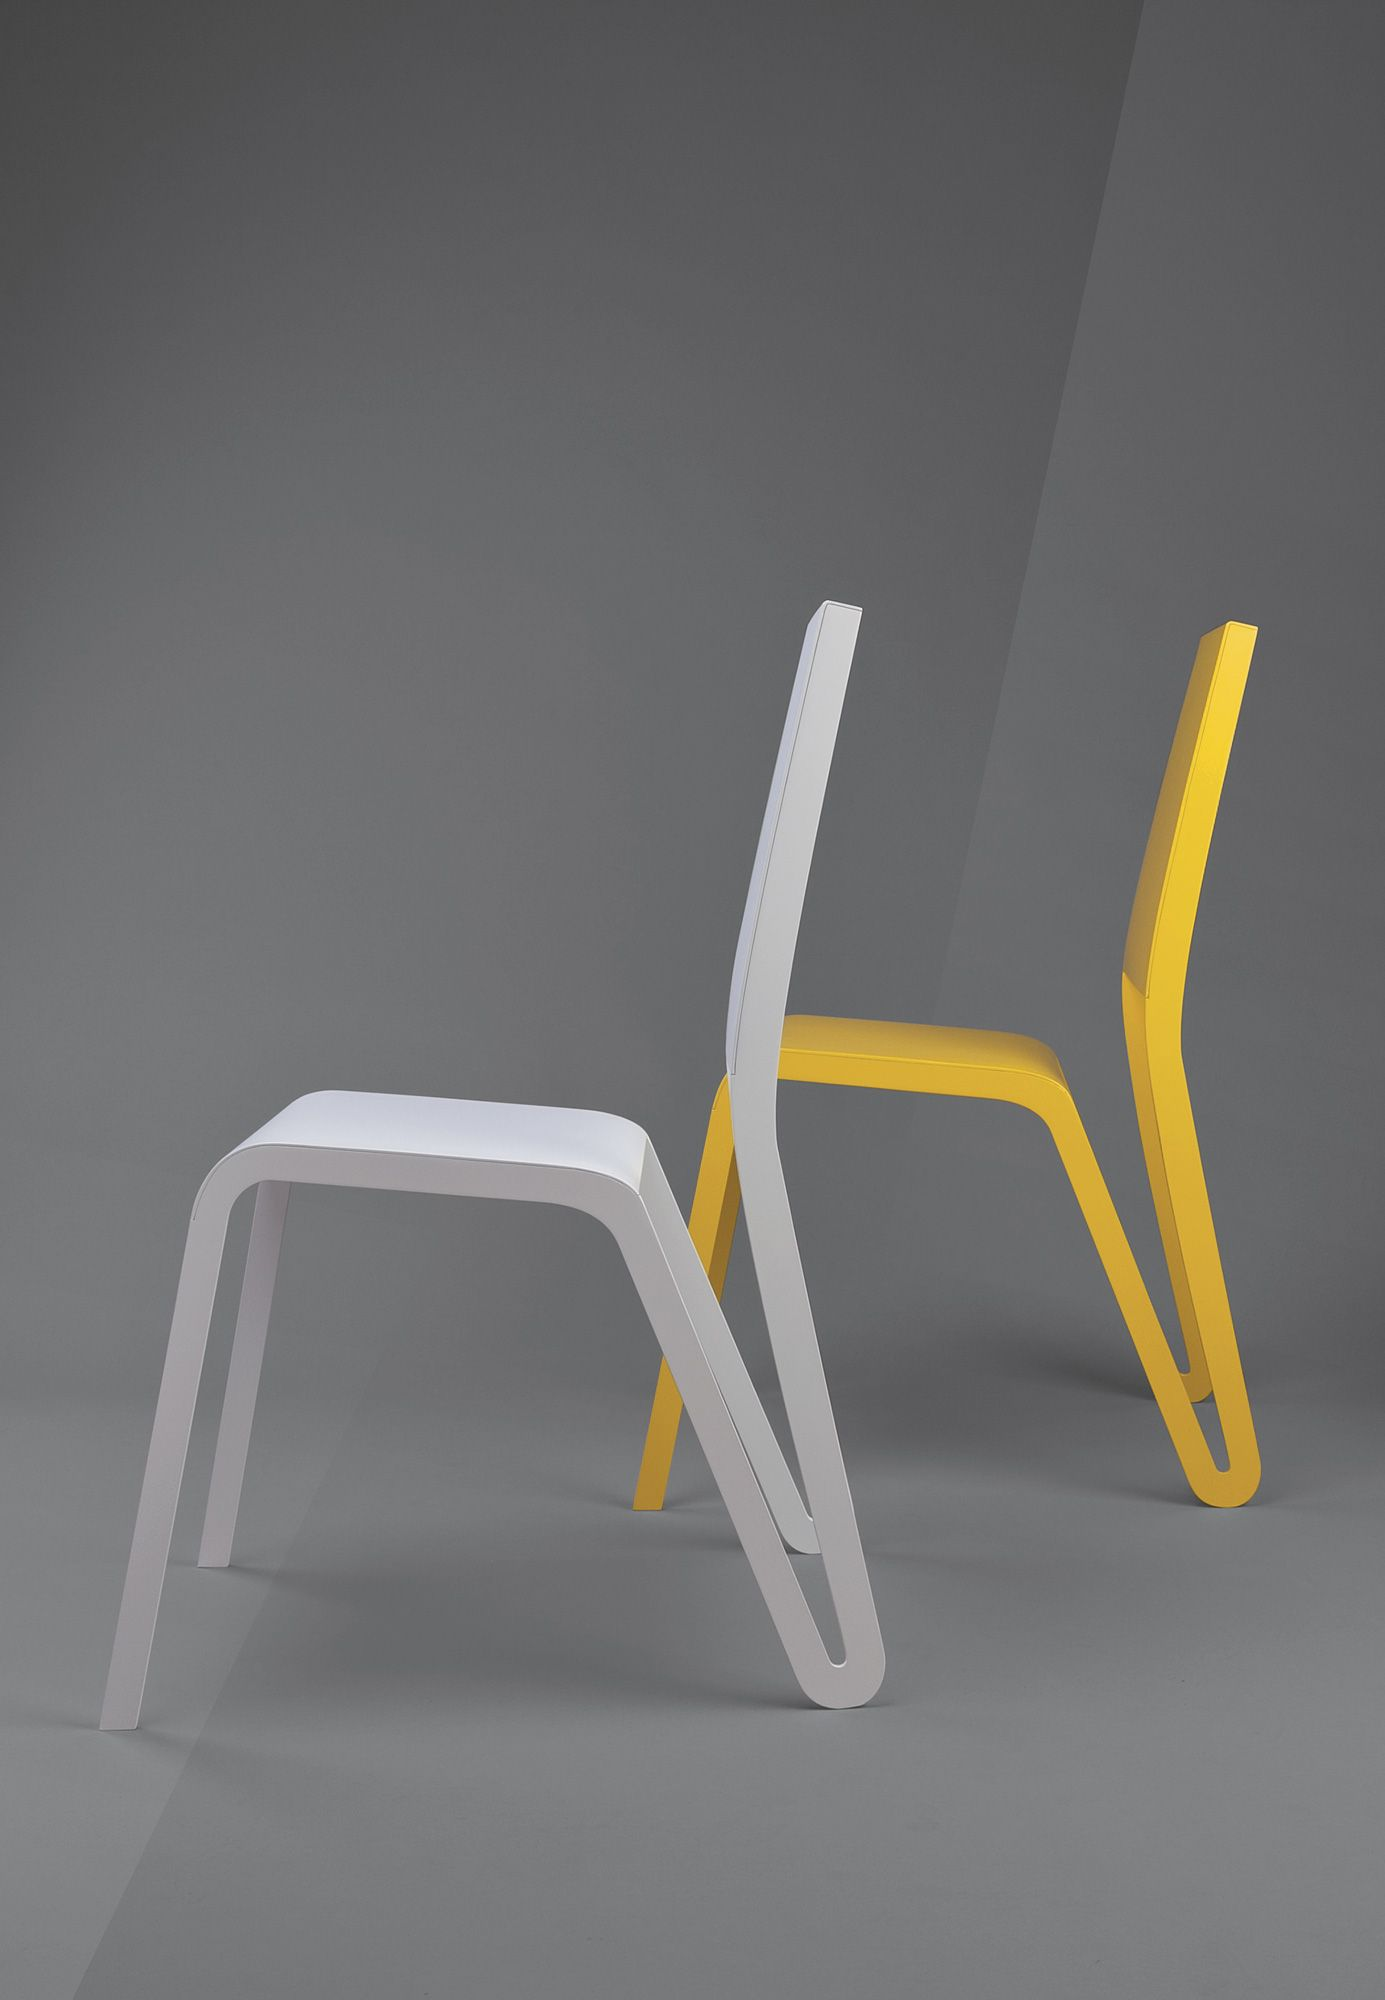 Chaise : Switzerland Based Studio Kind Of Design Launched Earlier This Year  Their Debut Collection Of Furniture, Called (via Formfreundlich.